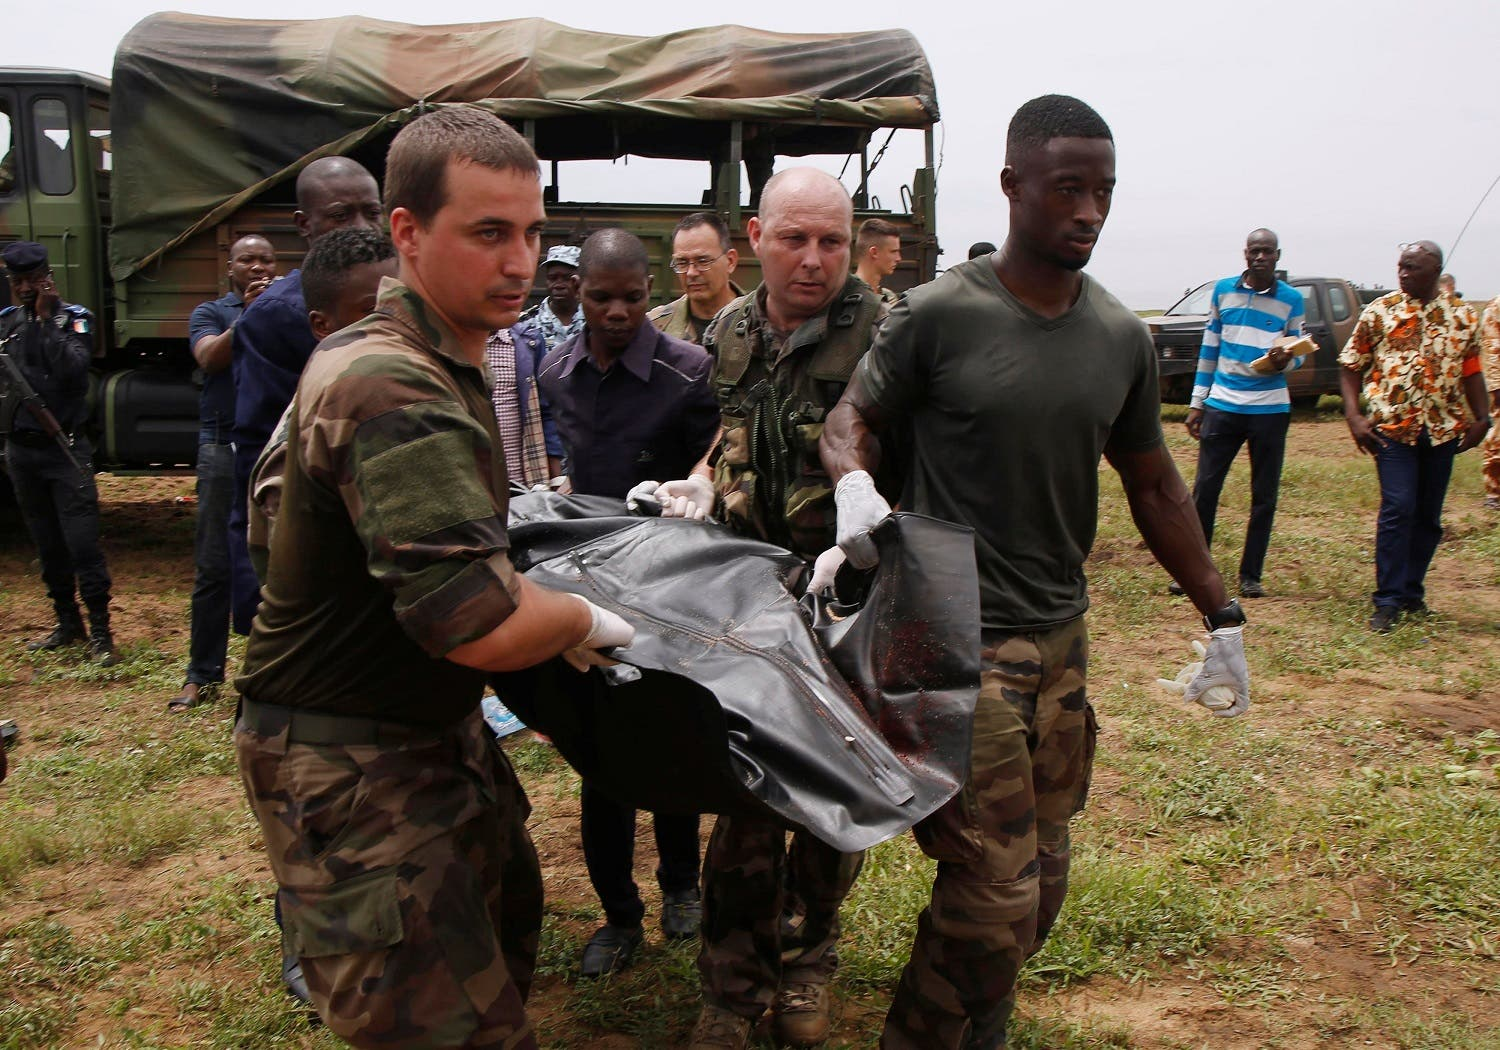 French soldiers and rescuers carry a body after a propeller-engine cargo plane crashed in the sea near the international airport in Ivory Coast's main city, Abidjan. (Reuters)